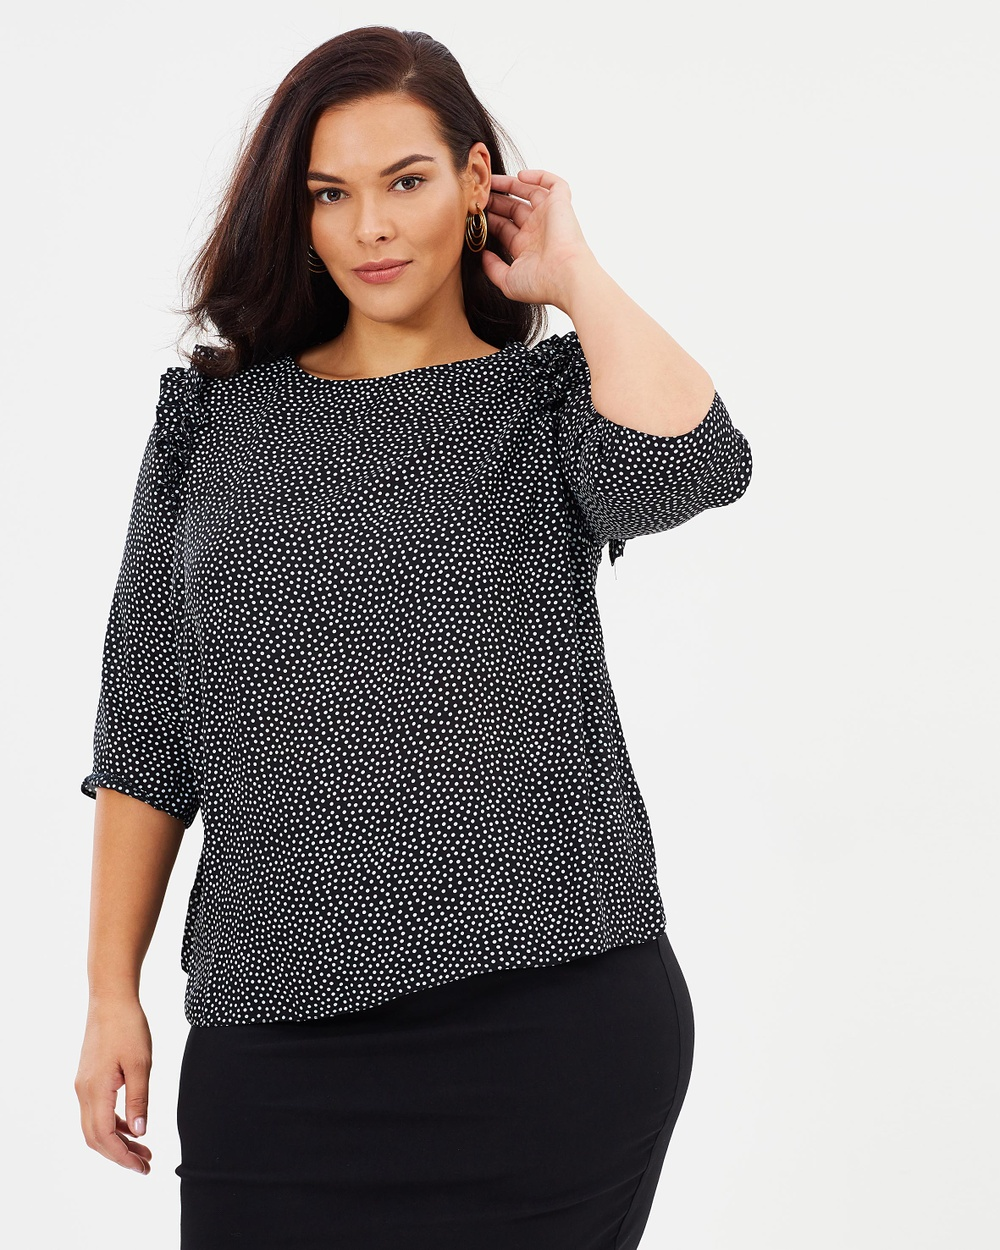 DP Curve Ruffle Shoulder Top Tops Black Spot Ruffle Shoulder Top